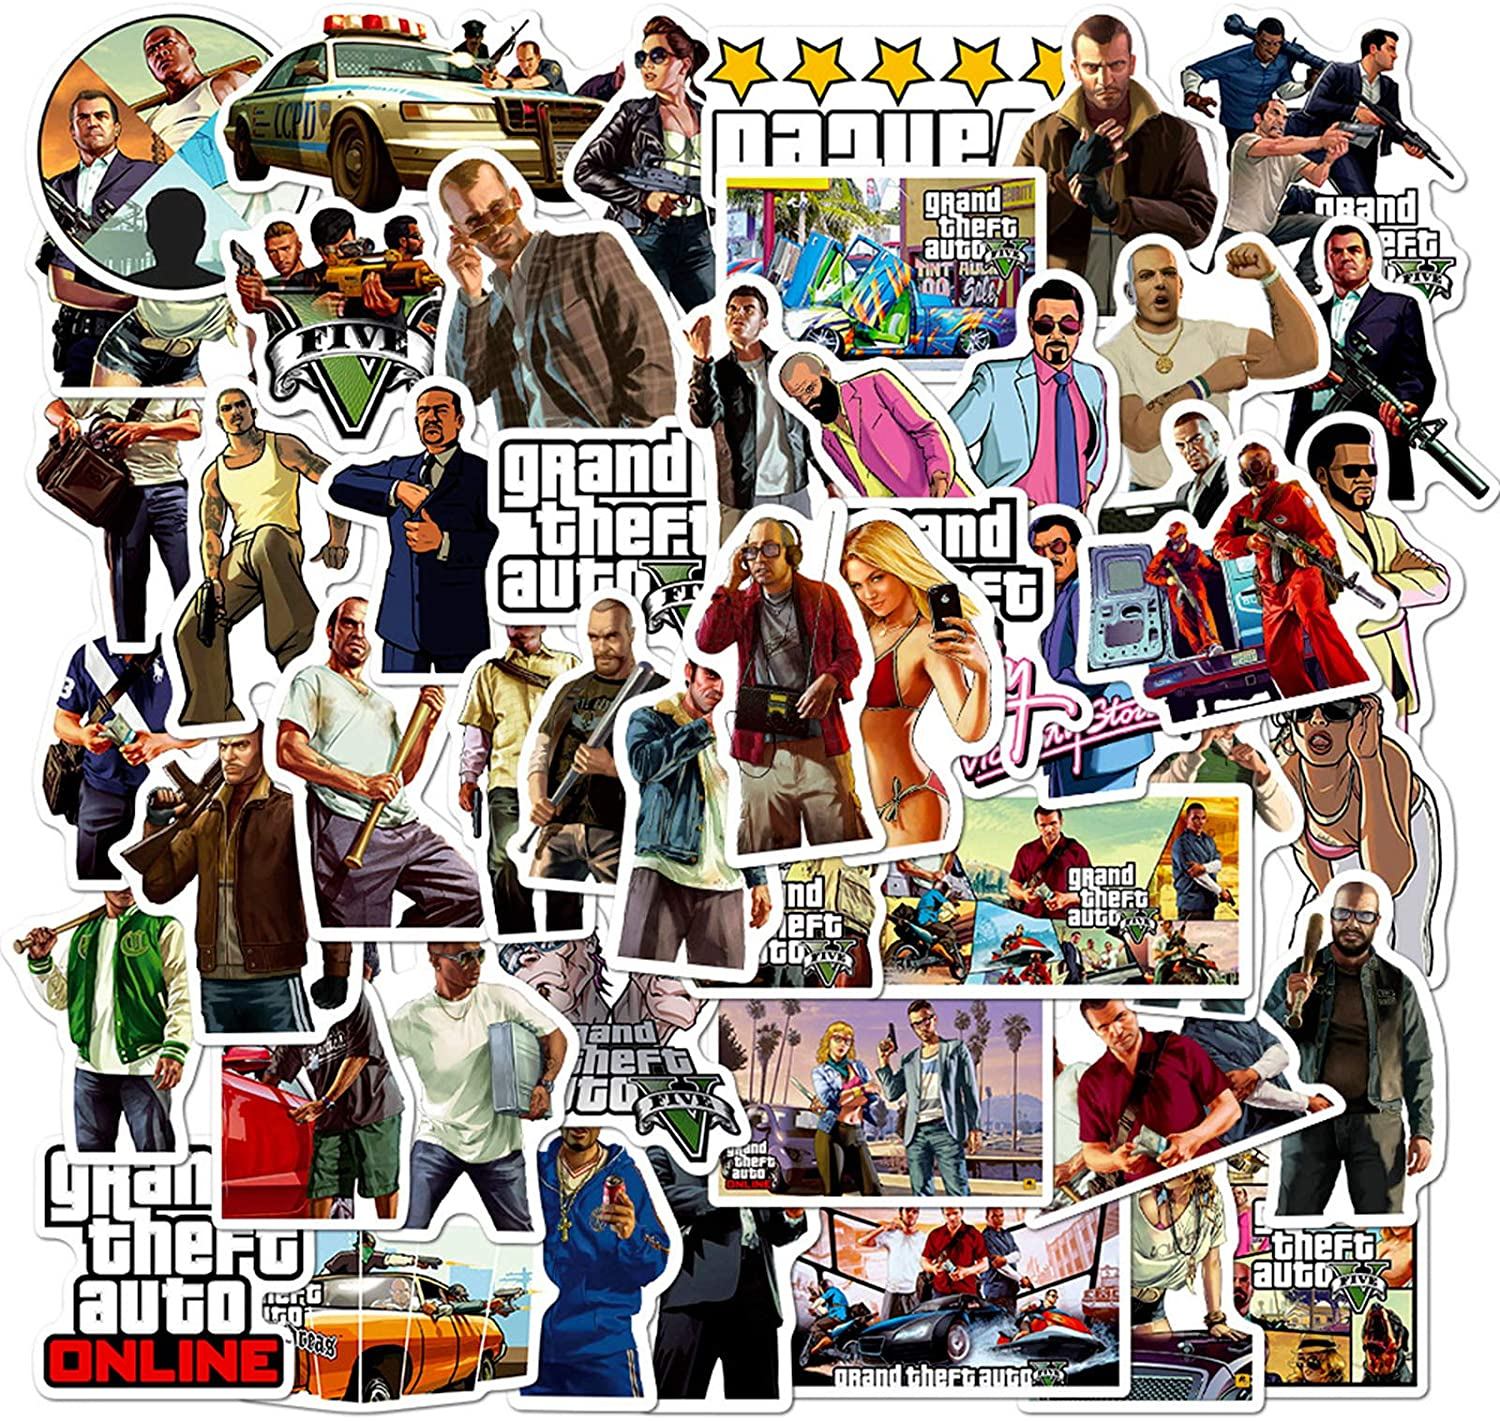 Grand Theft Auto Cool Game Stickers for Laptop Computer Phone Bicycle Motorcycle Skateboard Cars Xbox PS4 50pcs